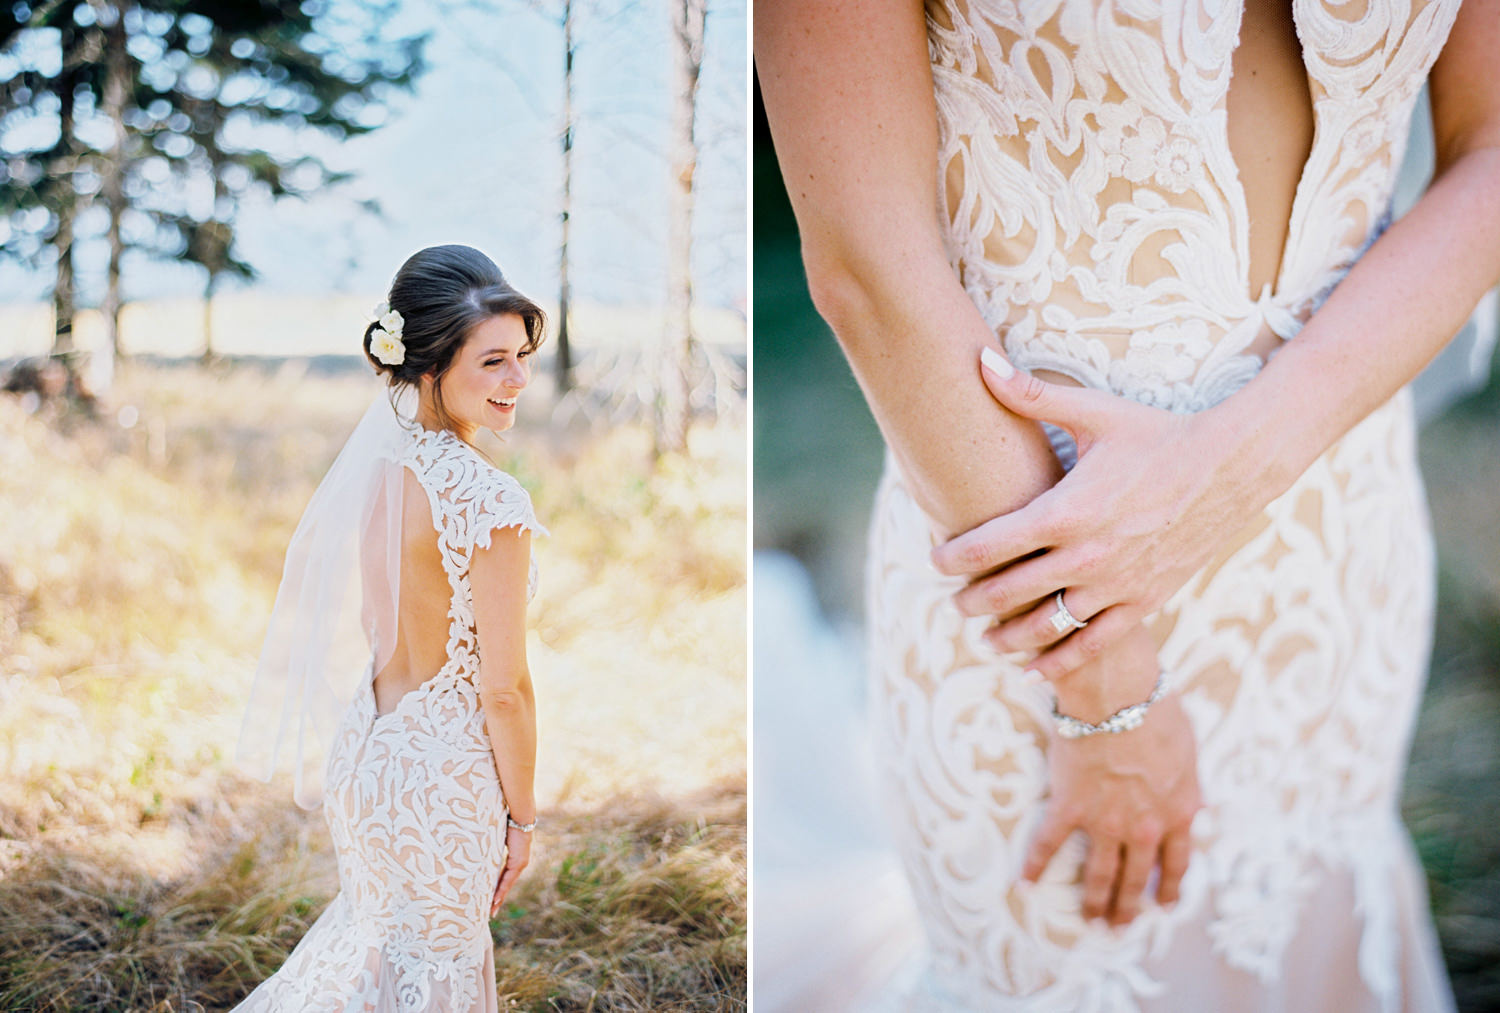 259-bright-coral-wedding-with-sinclair-and-moore-at-suncadia-resort.jpg